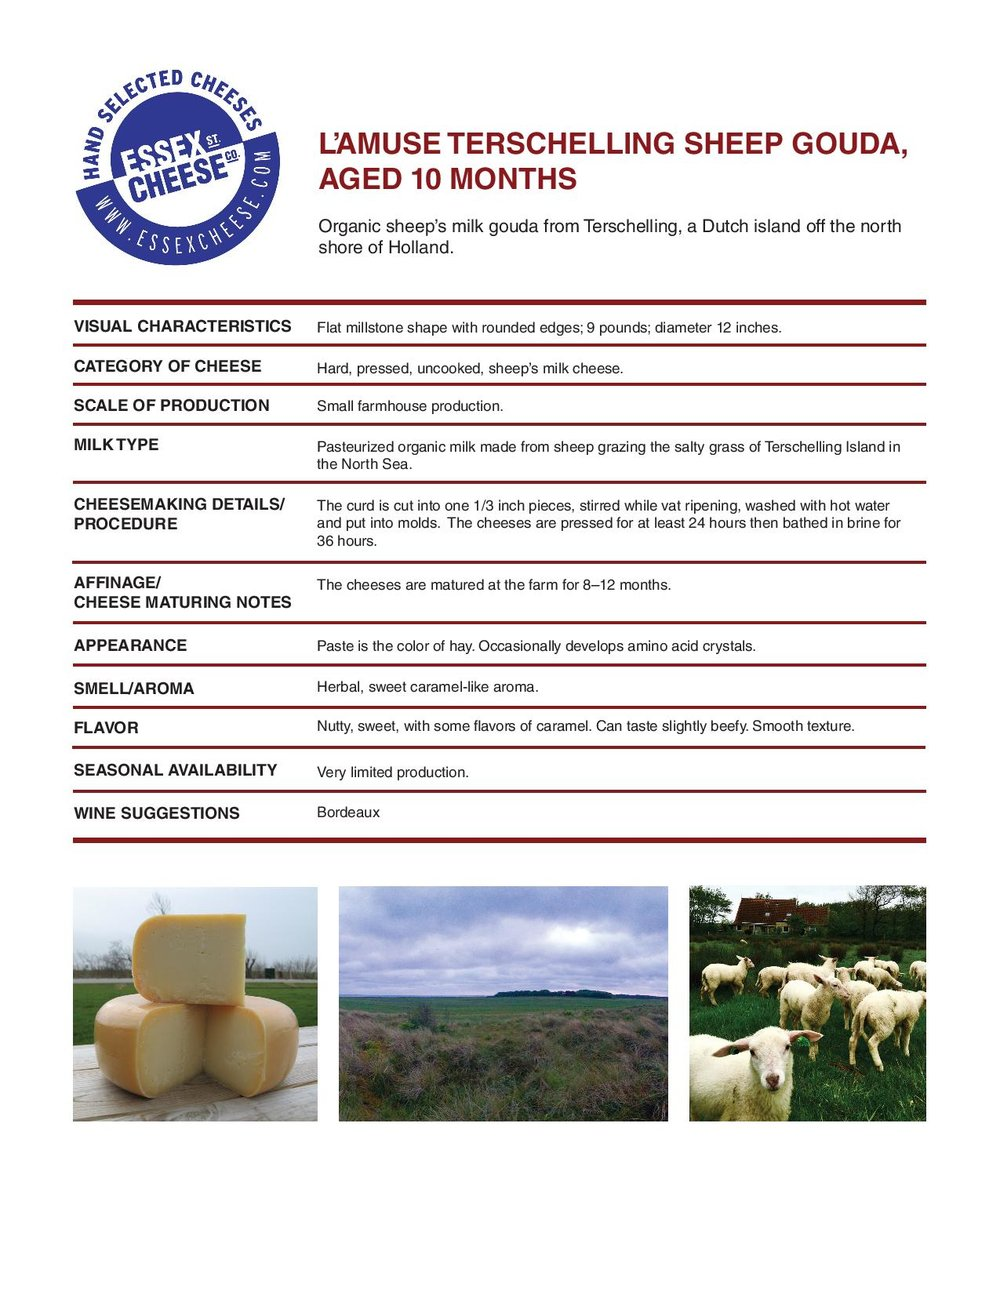 TerschellingSheep Gouda Specifications - Details on the organic sheep's milk gouda from the island of Terschelling. 8.5 x 11 inch PDF to download and print for training and reference.